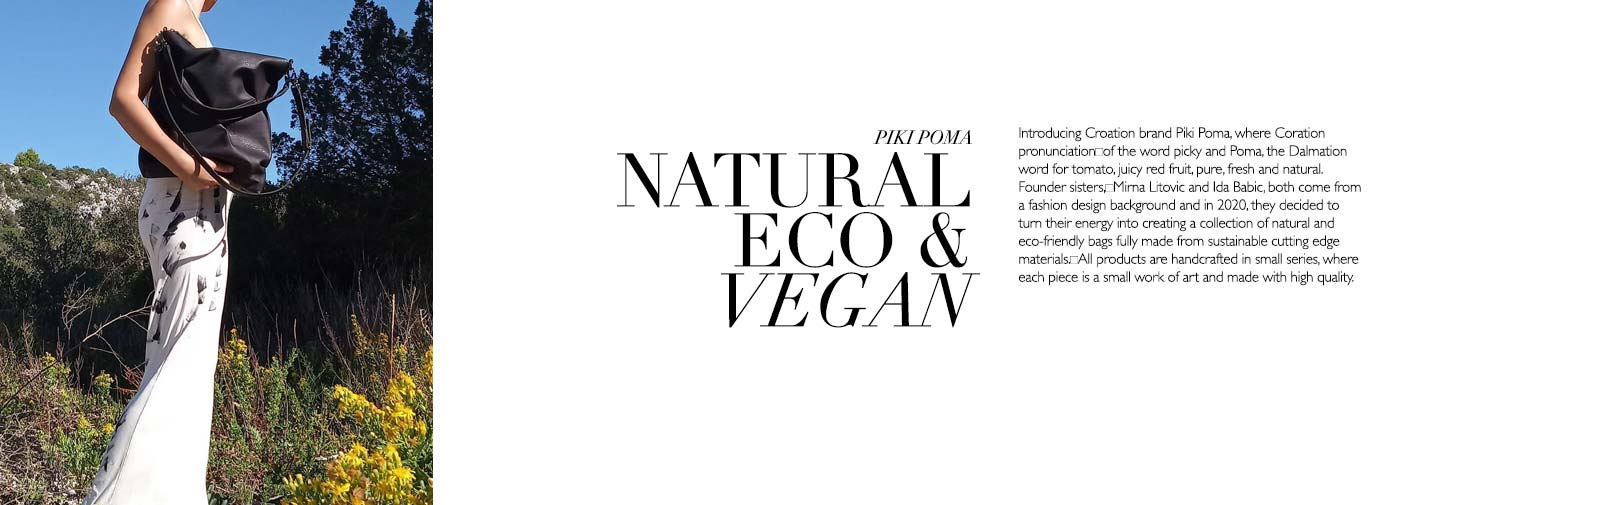 PIKI POMA - NATURAL ECO-FRIENDLY & VEGAN - Introducing Croation brand Piki Poma, where Coration pronunciation of the word Picky and Poma, the Dalmation word for tomato, juicy red fruit, pure, fresh and natural. Founder sisters, Mirna Litovic and Ida Babic, both come from a fashion design background and in 2020, they decided to turn their energy into creating a collection of natural and eco-friendly bags fully made from sustainable cutting edge materials. All products are handcrafted in small series, where each piece is a small work of art and made with high quality.